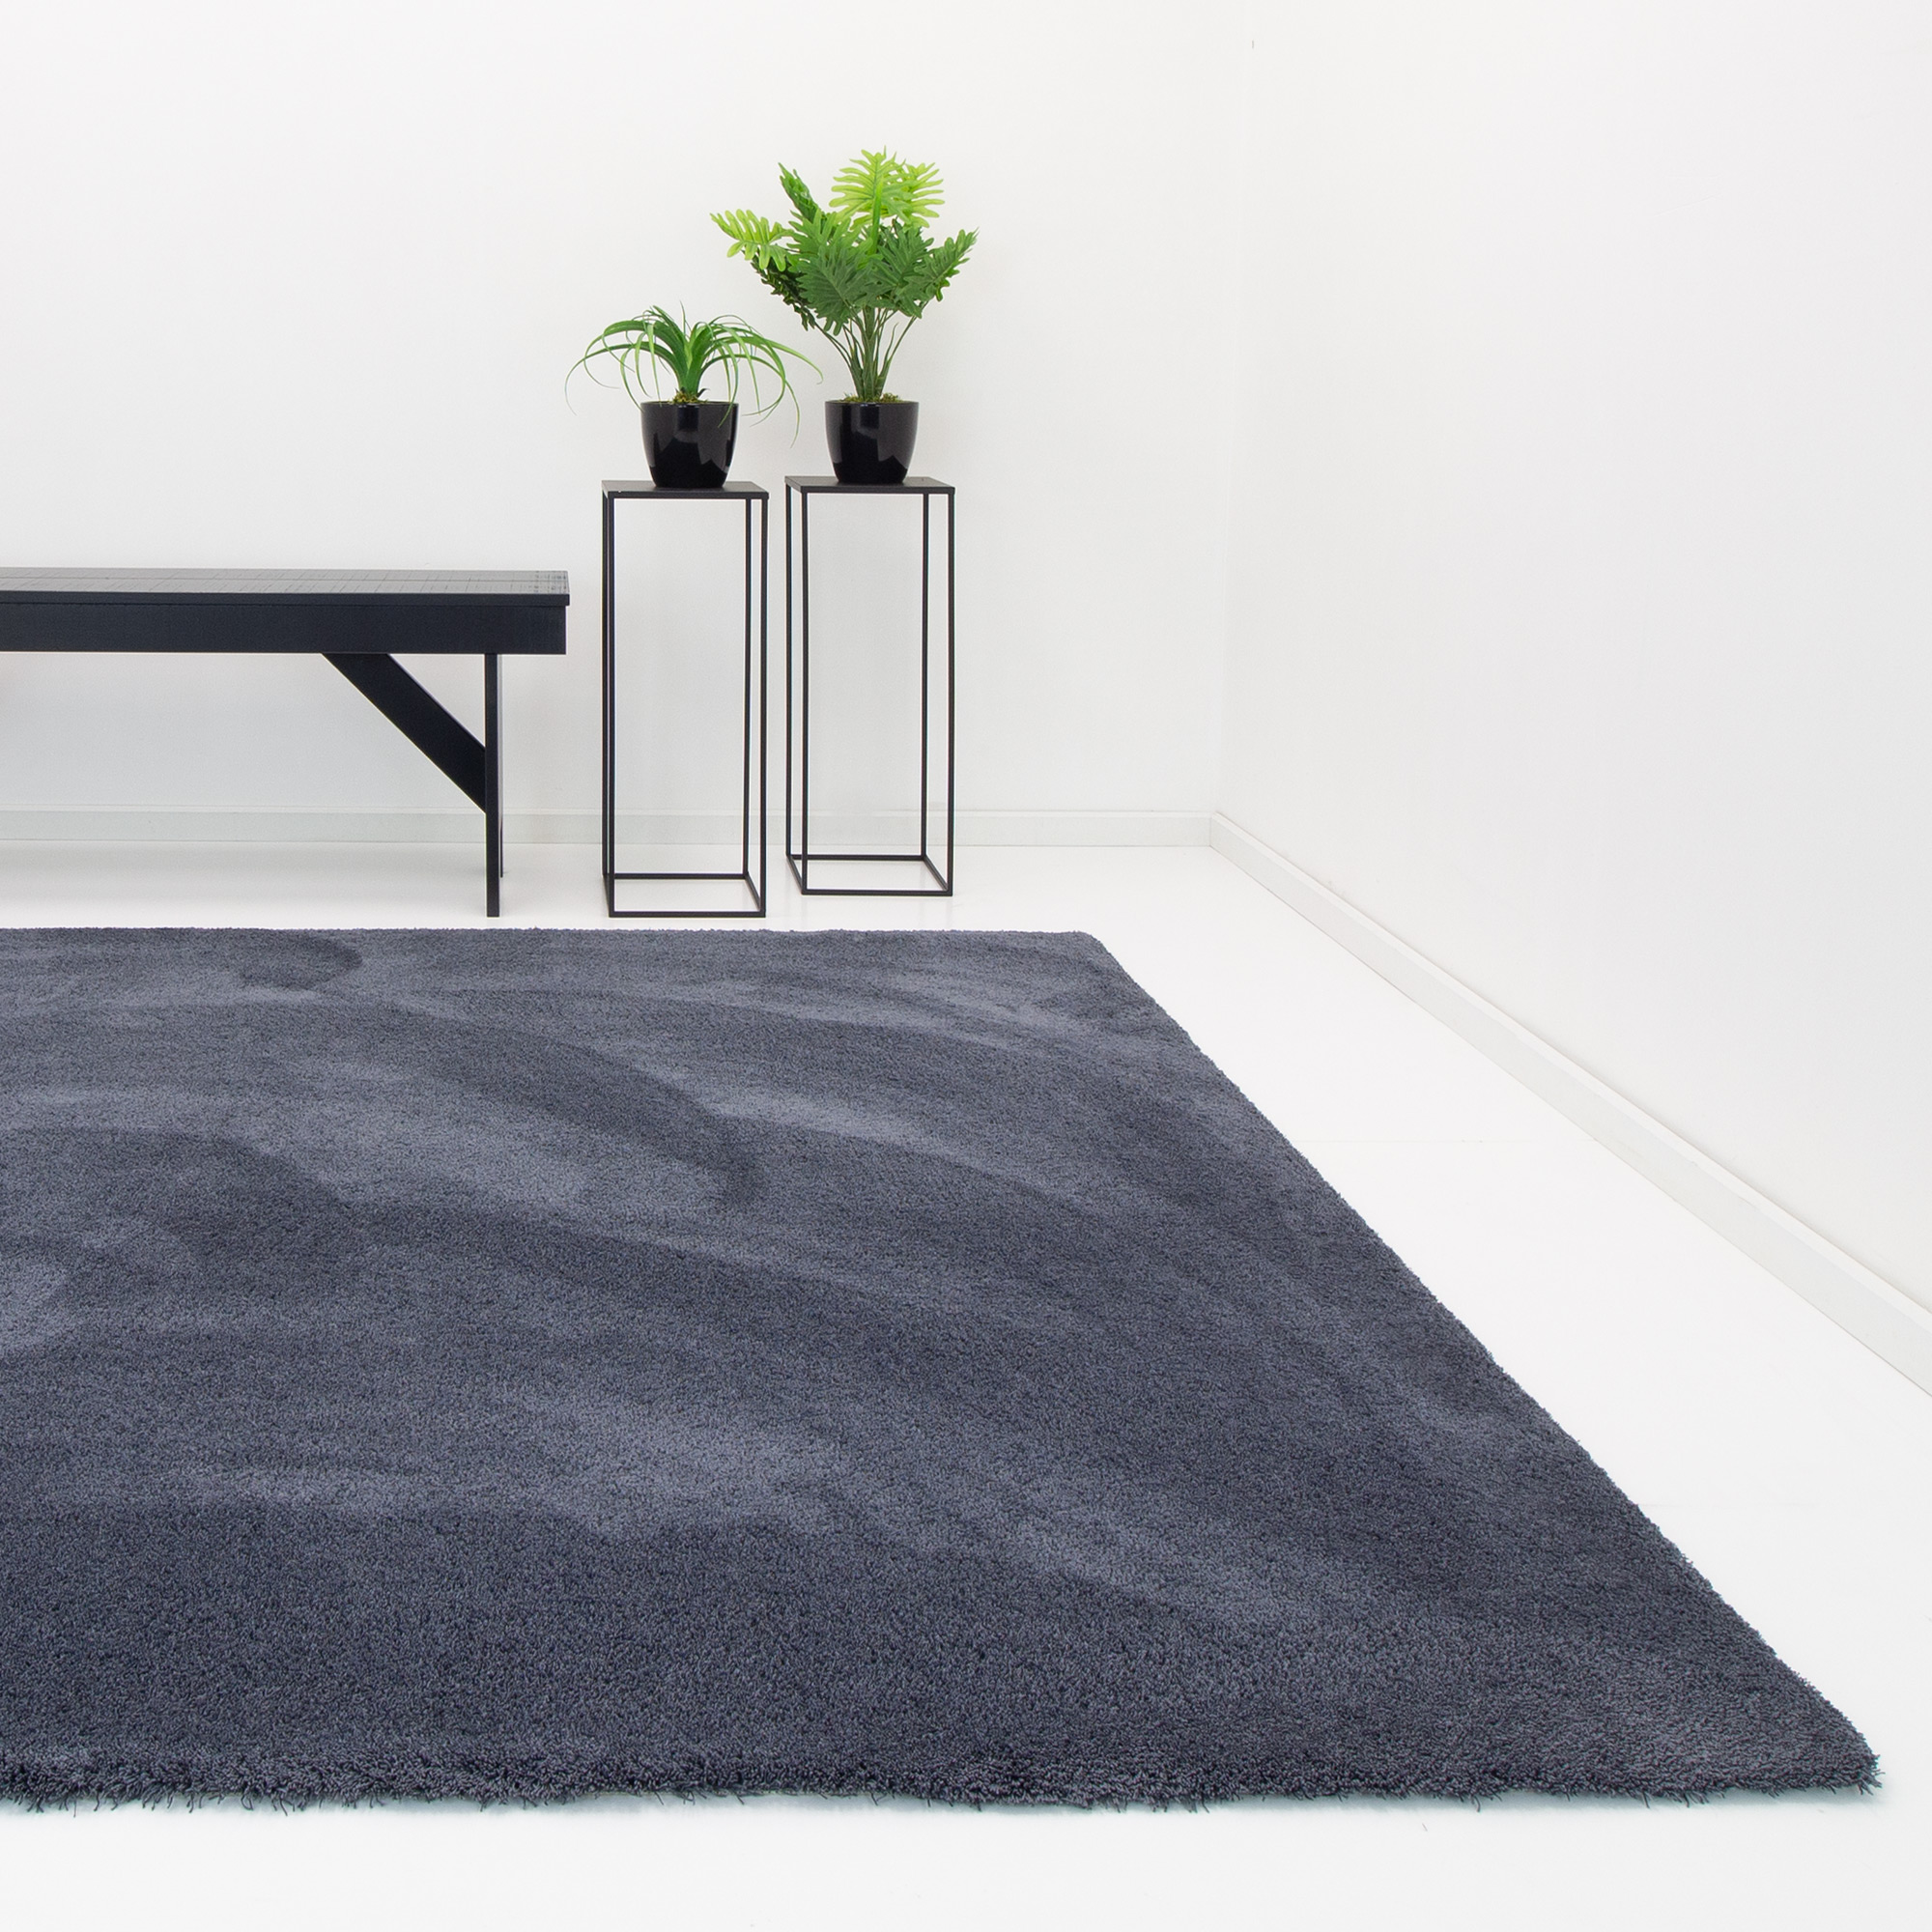 Vloerkleed Xilento Amazing Anthracite